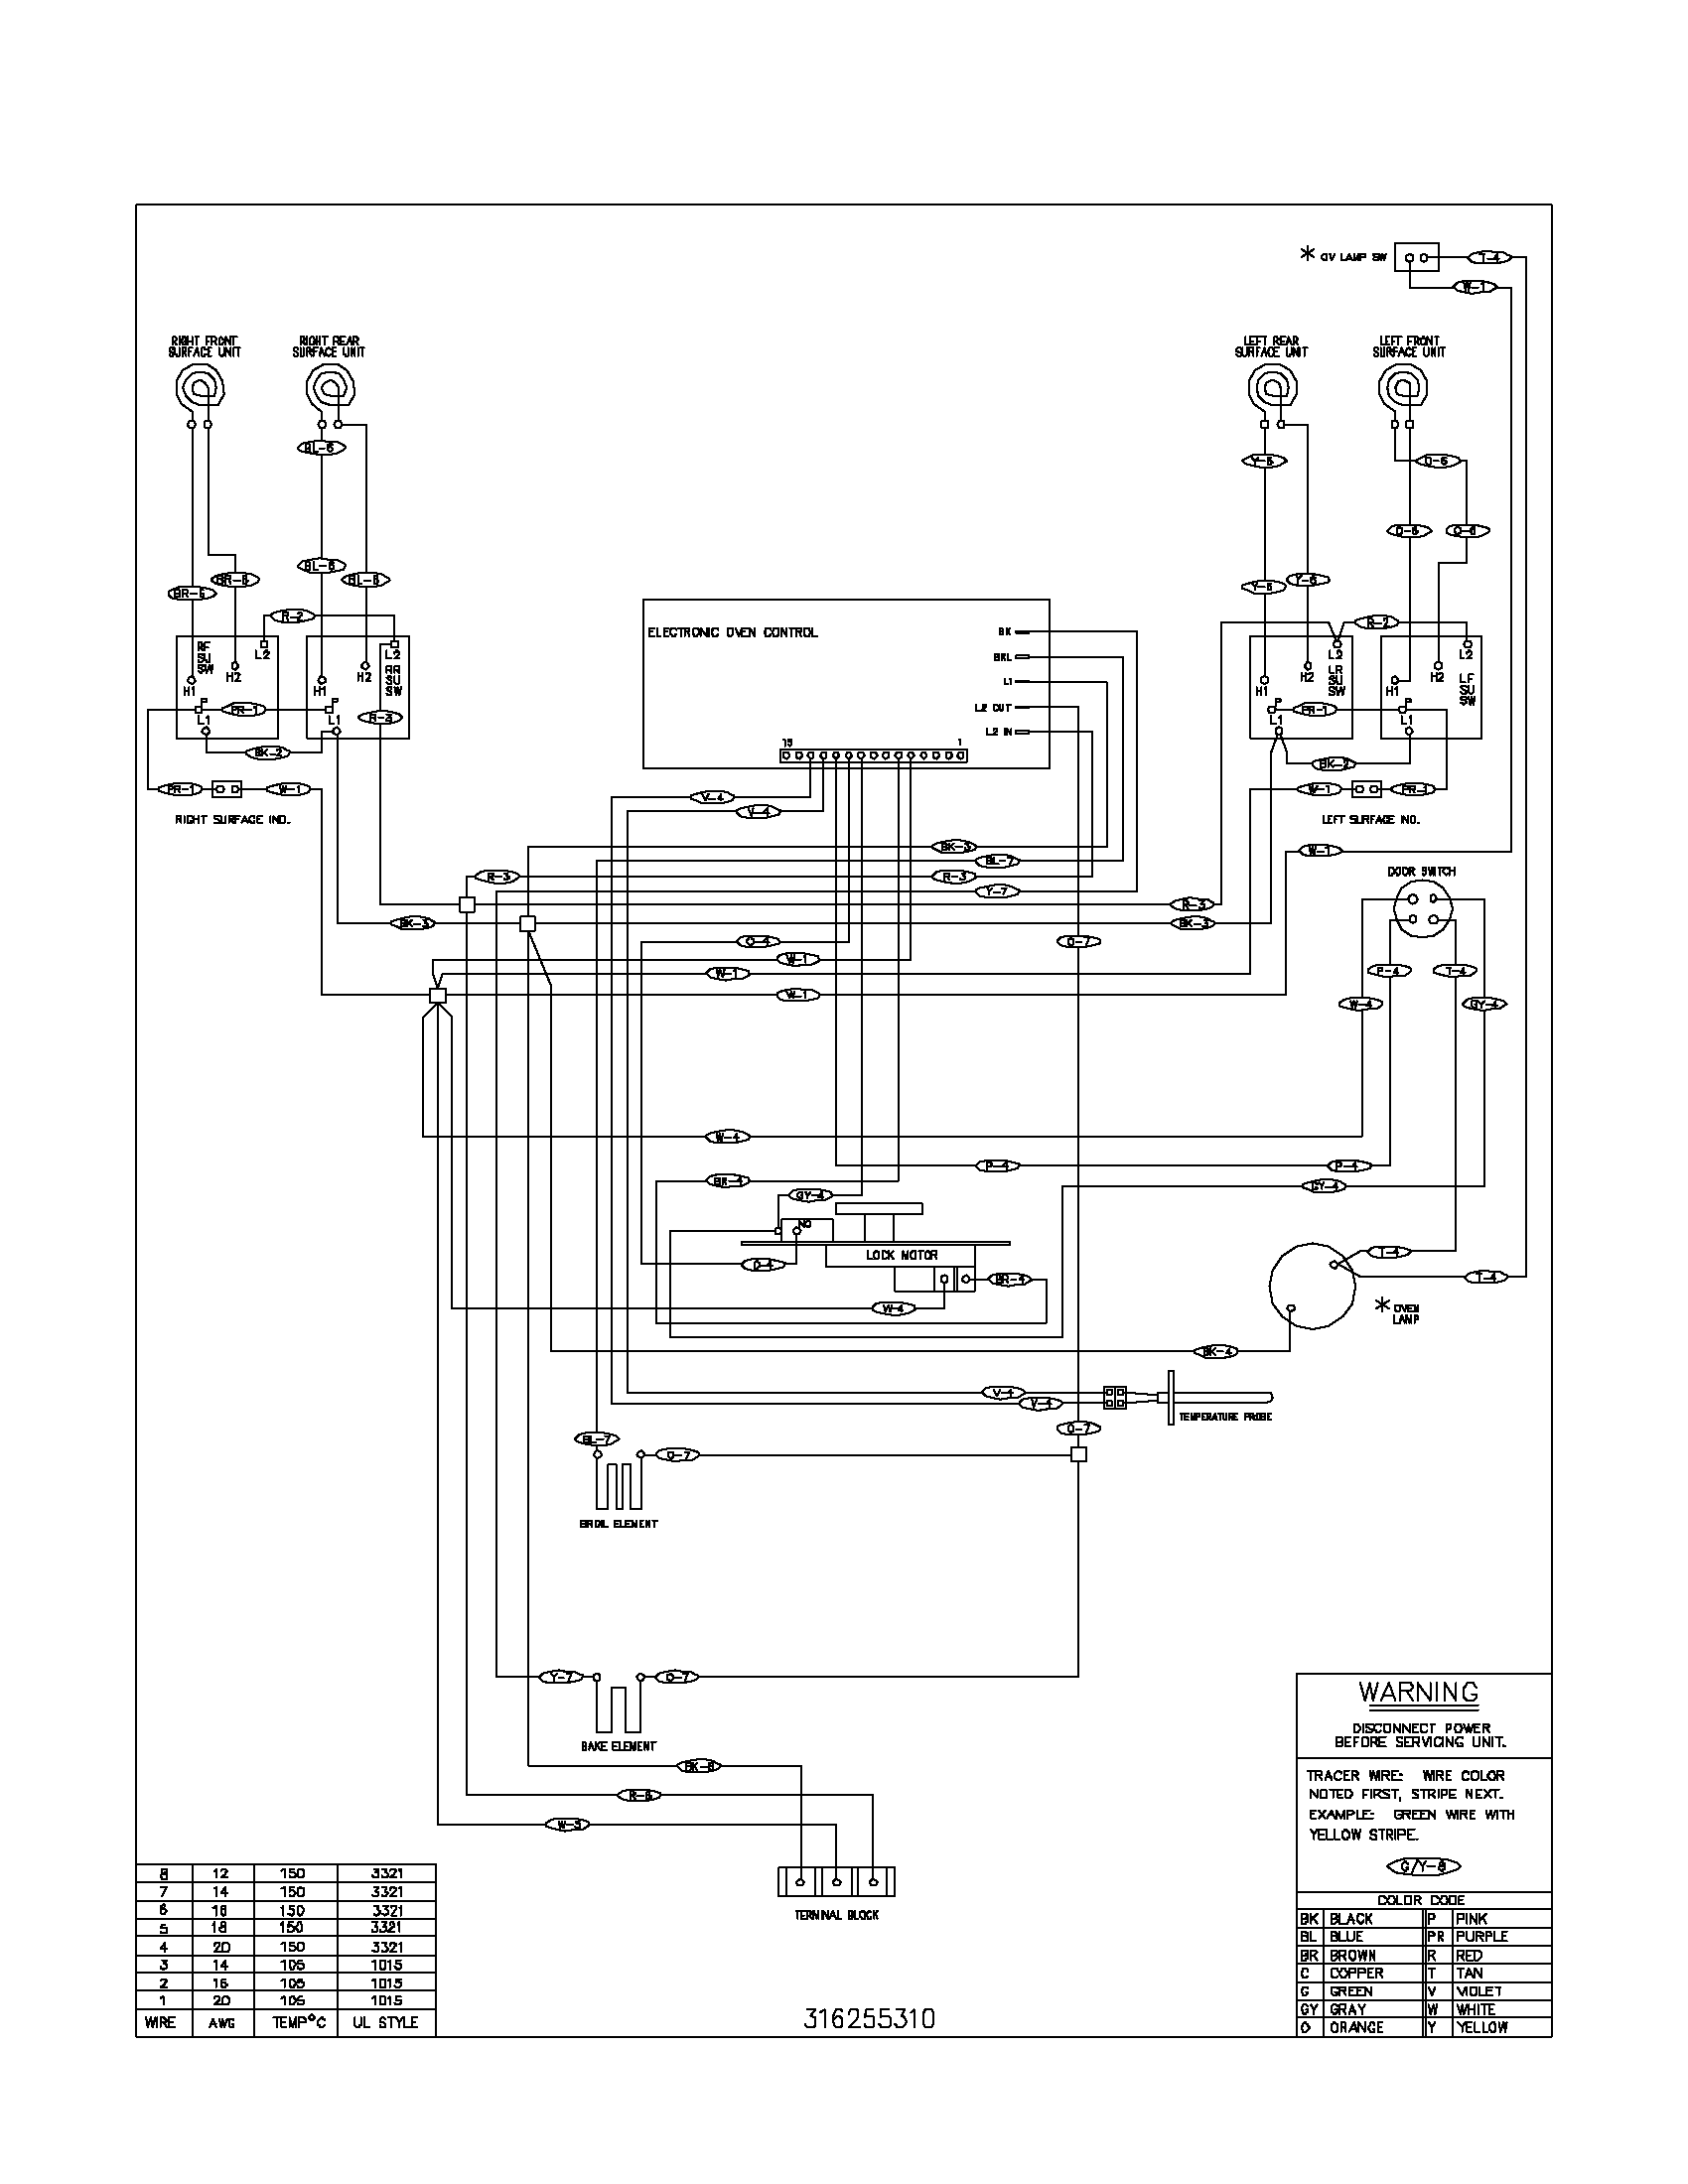 Electric Stove Wiring Reinvent Your Diagram Dryer For 220 Kelvinator Range Detailed Schematics Rh Lelandlutheran Com